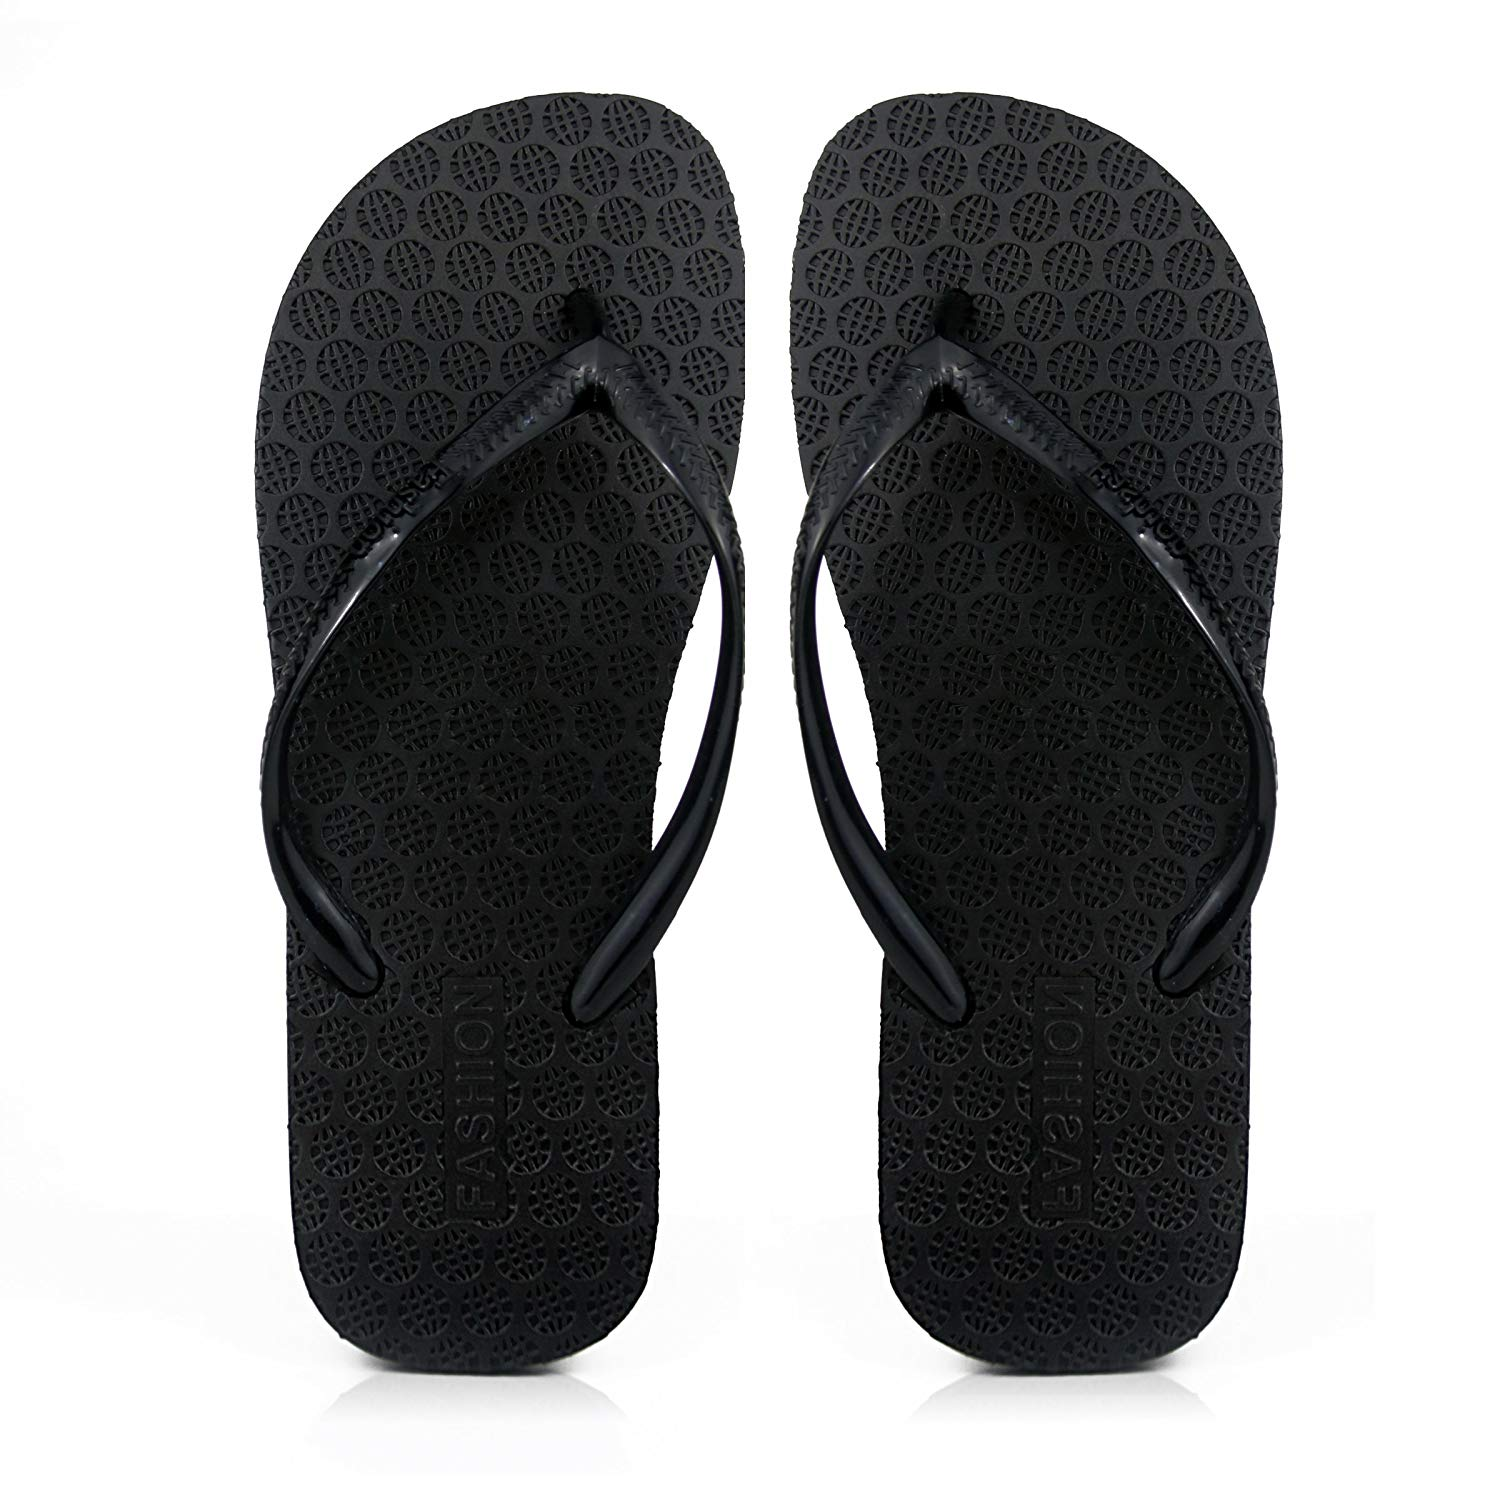 Cheap Slippers Slippers Black Deals Womens On Find Sxrfxw